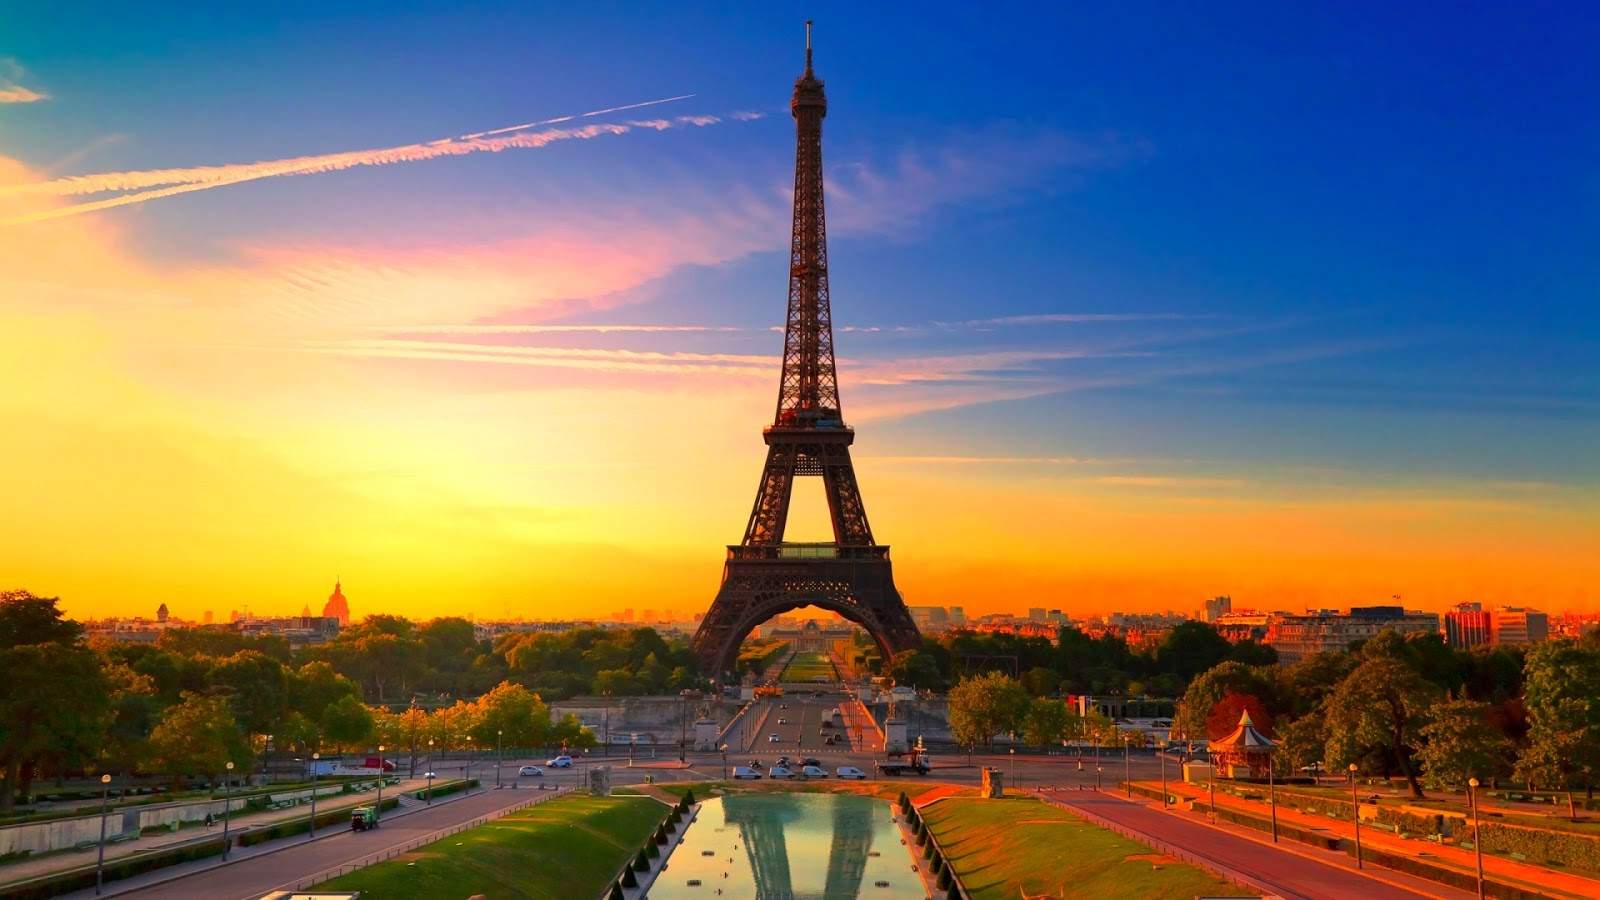 Eiffel Tower Sunset HD Wallpaper